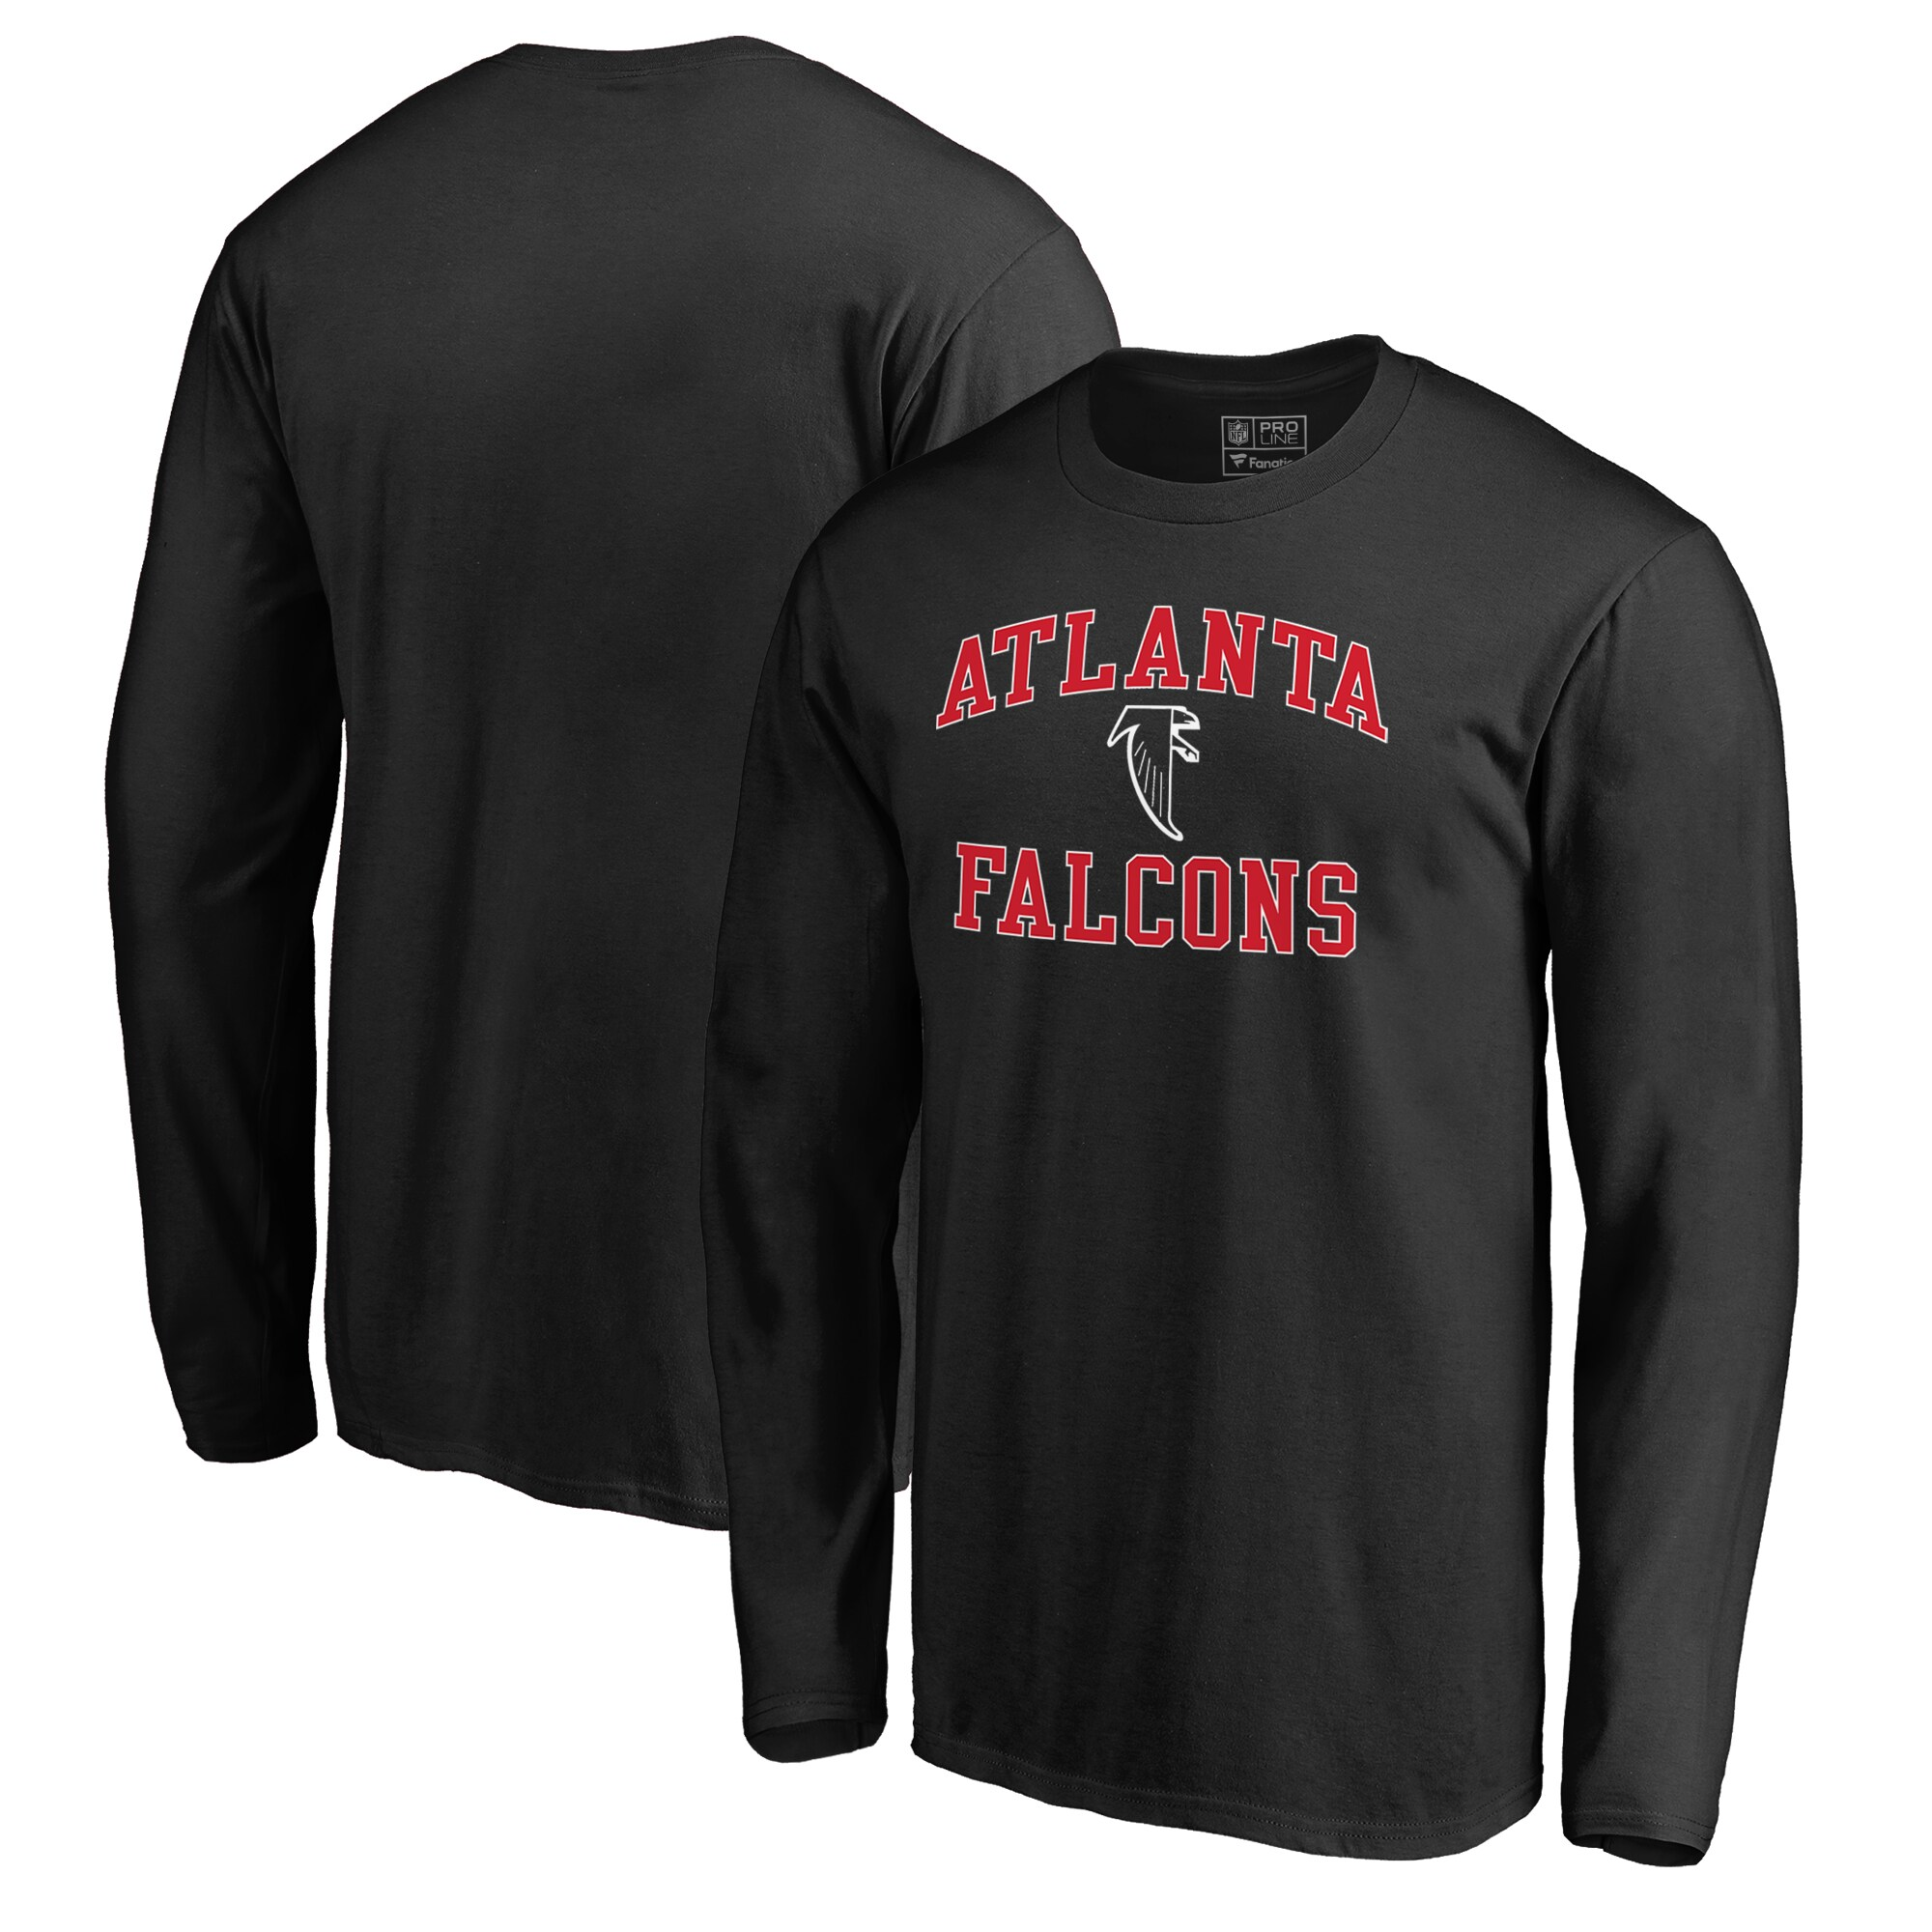 Atlanta Falcons NFL Pro Line by Fanatics Branded Vintage Collection Victory Arch Long Sleeve T-Shirt - Black